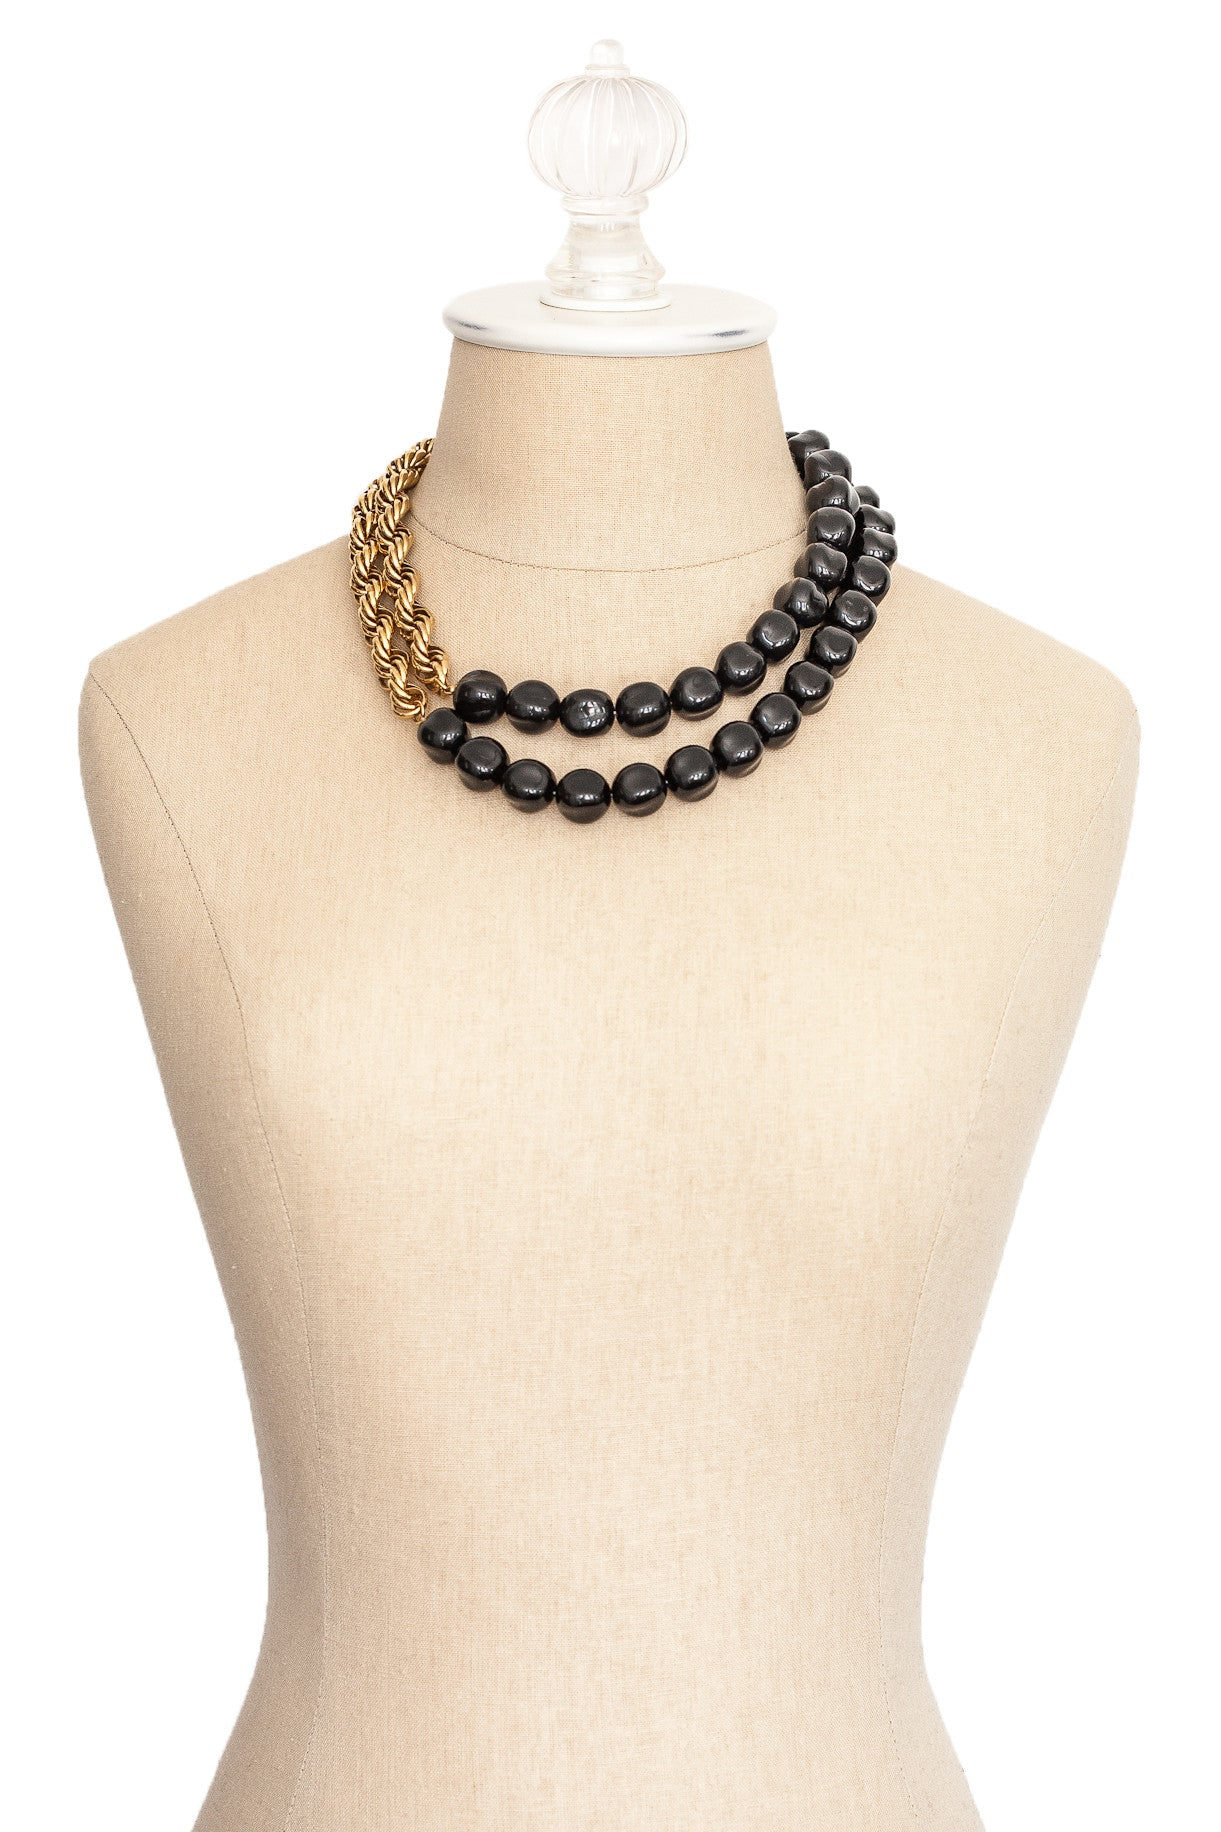 80's__Monet__Black & Gold Statement Necklace